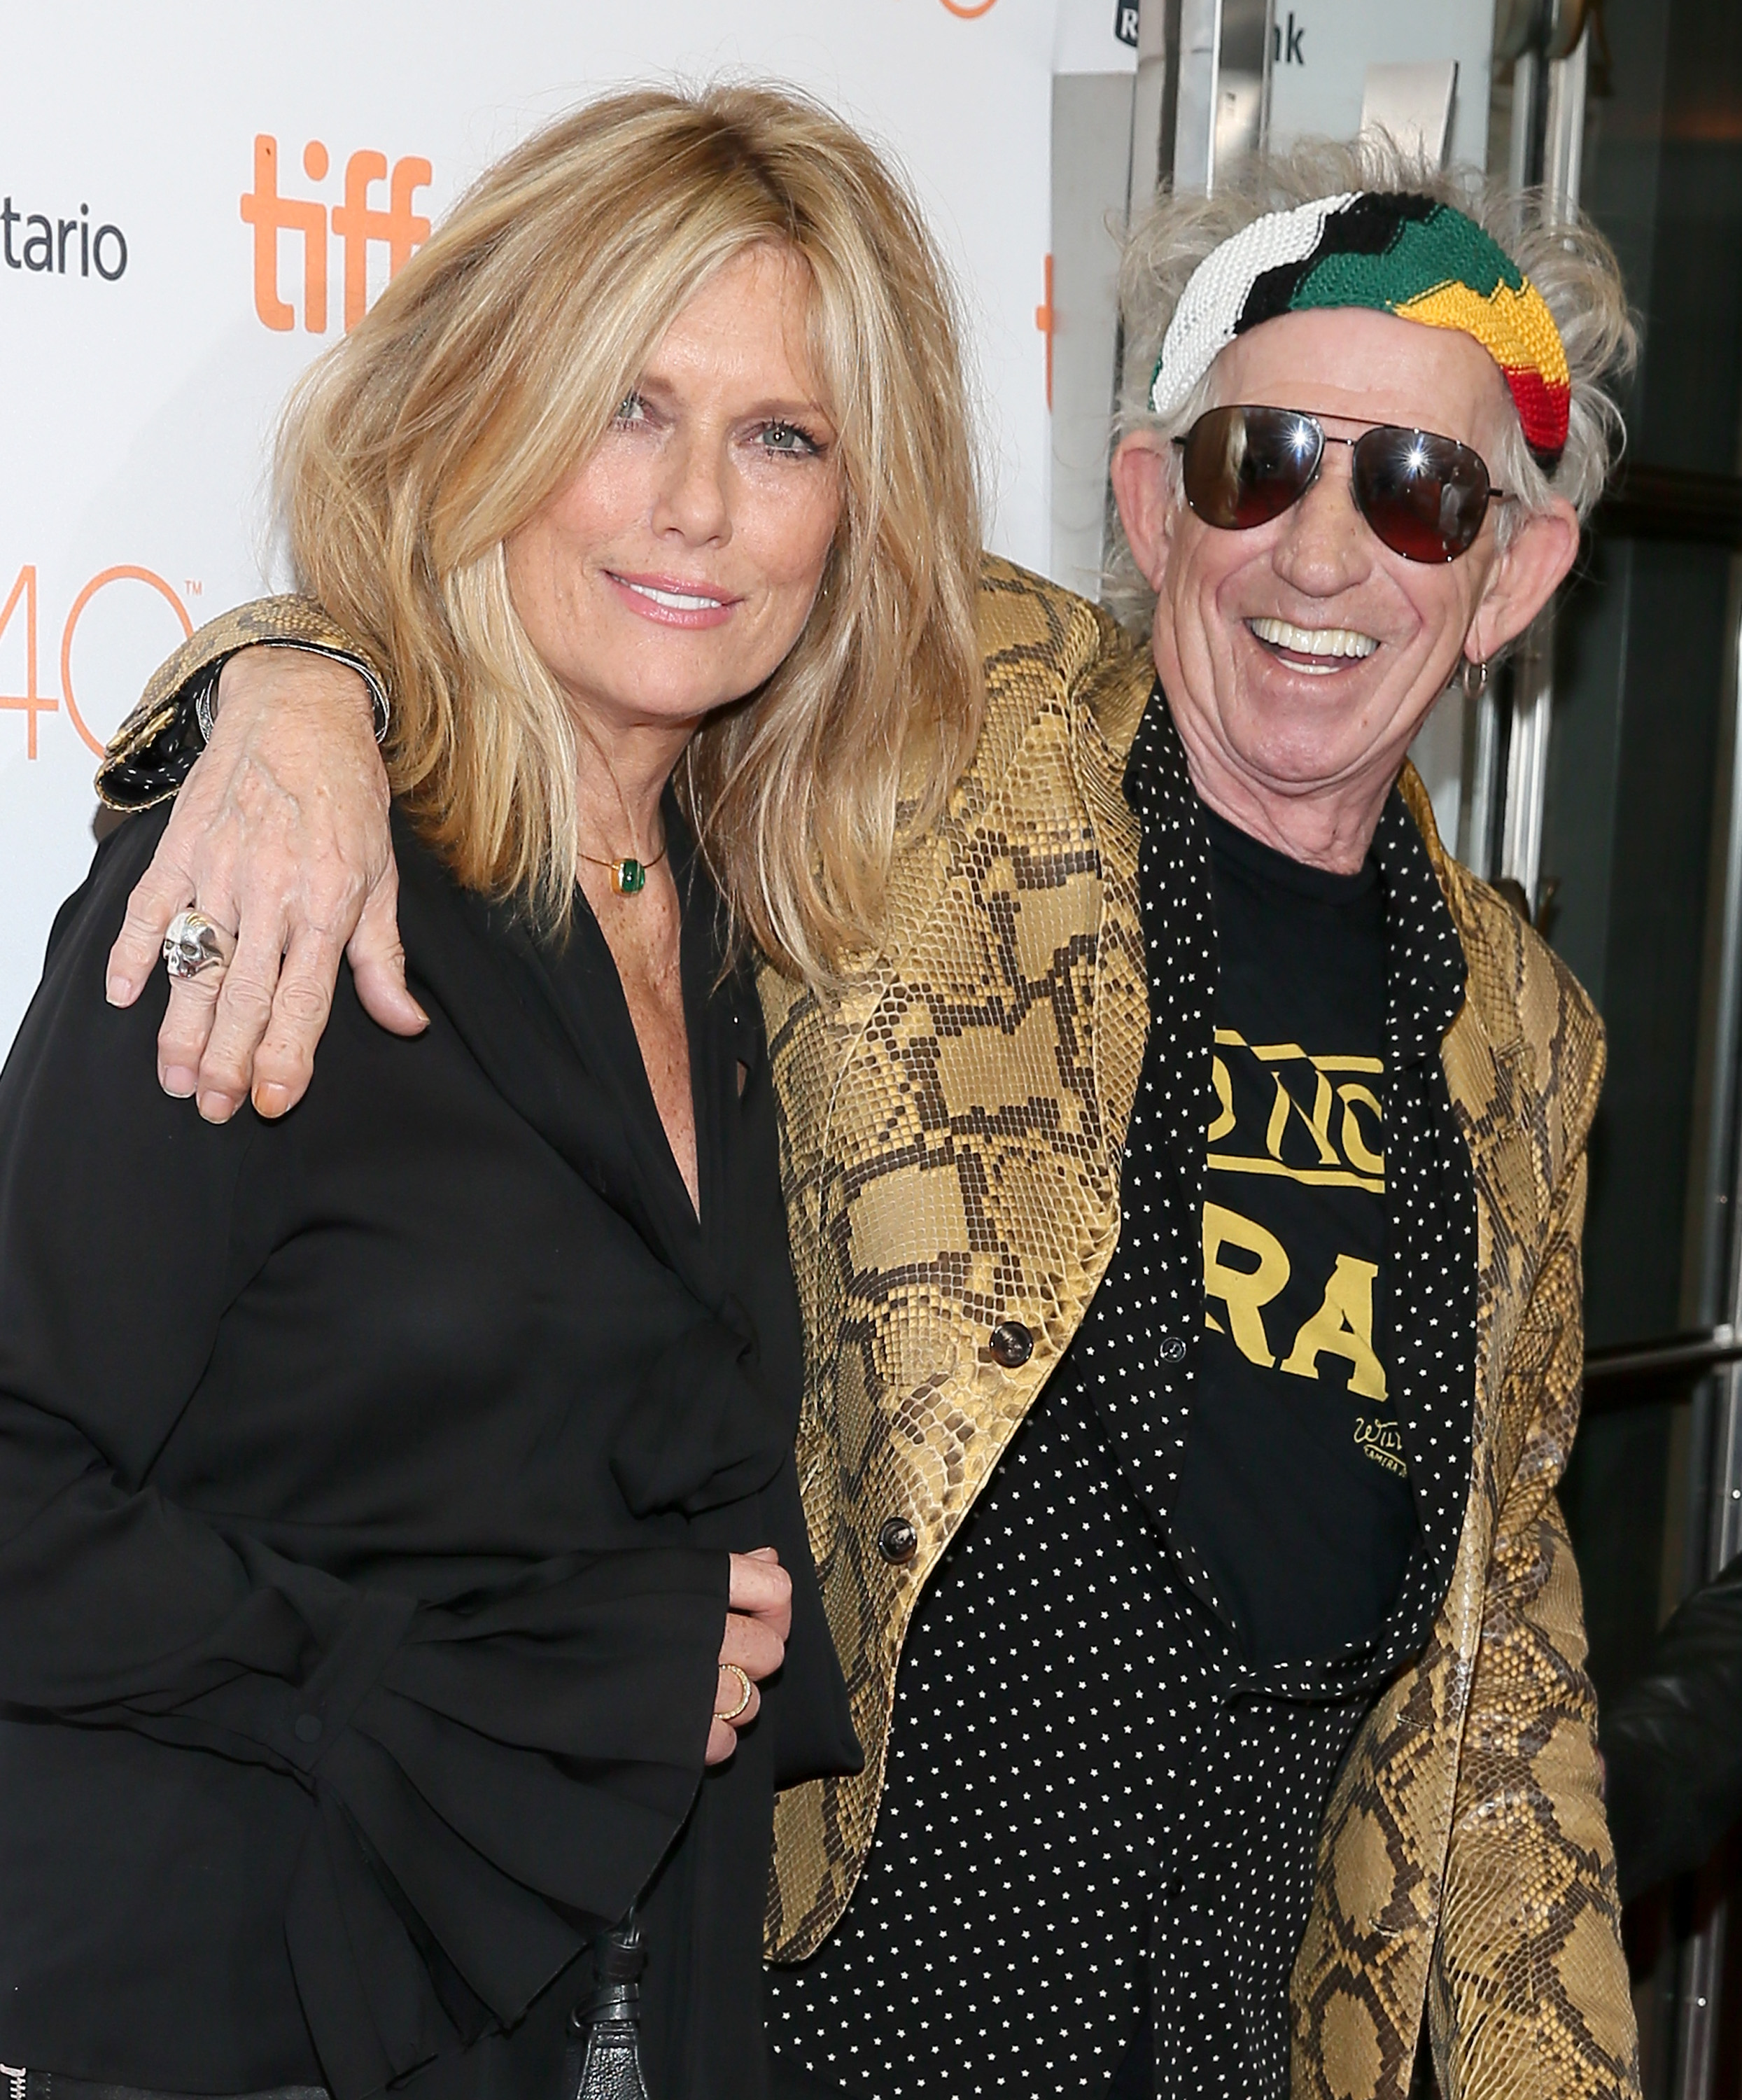 """TORONTO, ON - SEPTEMBER 17:  Musician Keith Richards (R) and Patti Hansen attend the """"Keith Richards: Under The Influence"""" premiere during the 2015 Toronto International Film Festival at Princess of Wales Theatre on September 17, 2015 in Toronto, Canada.  (Photo by Jemal Countess/Getty Images)"""